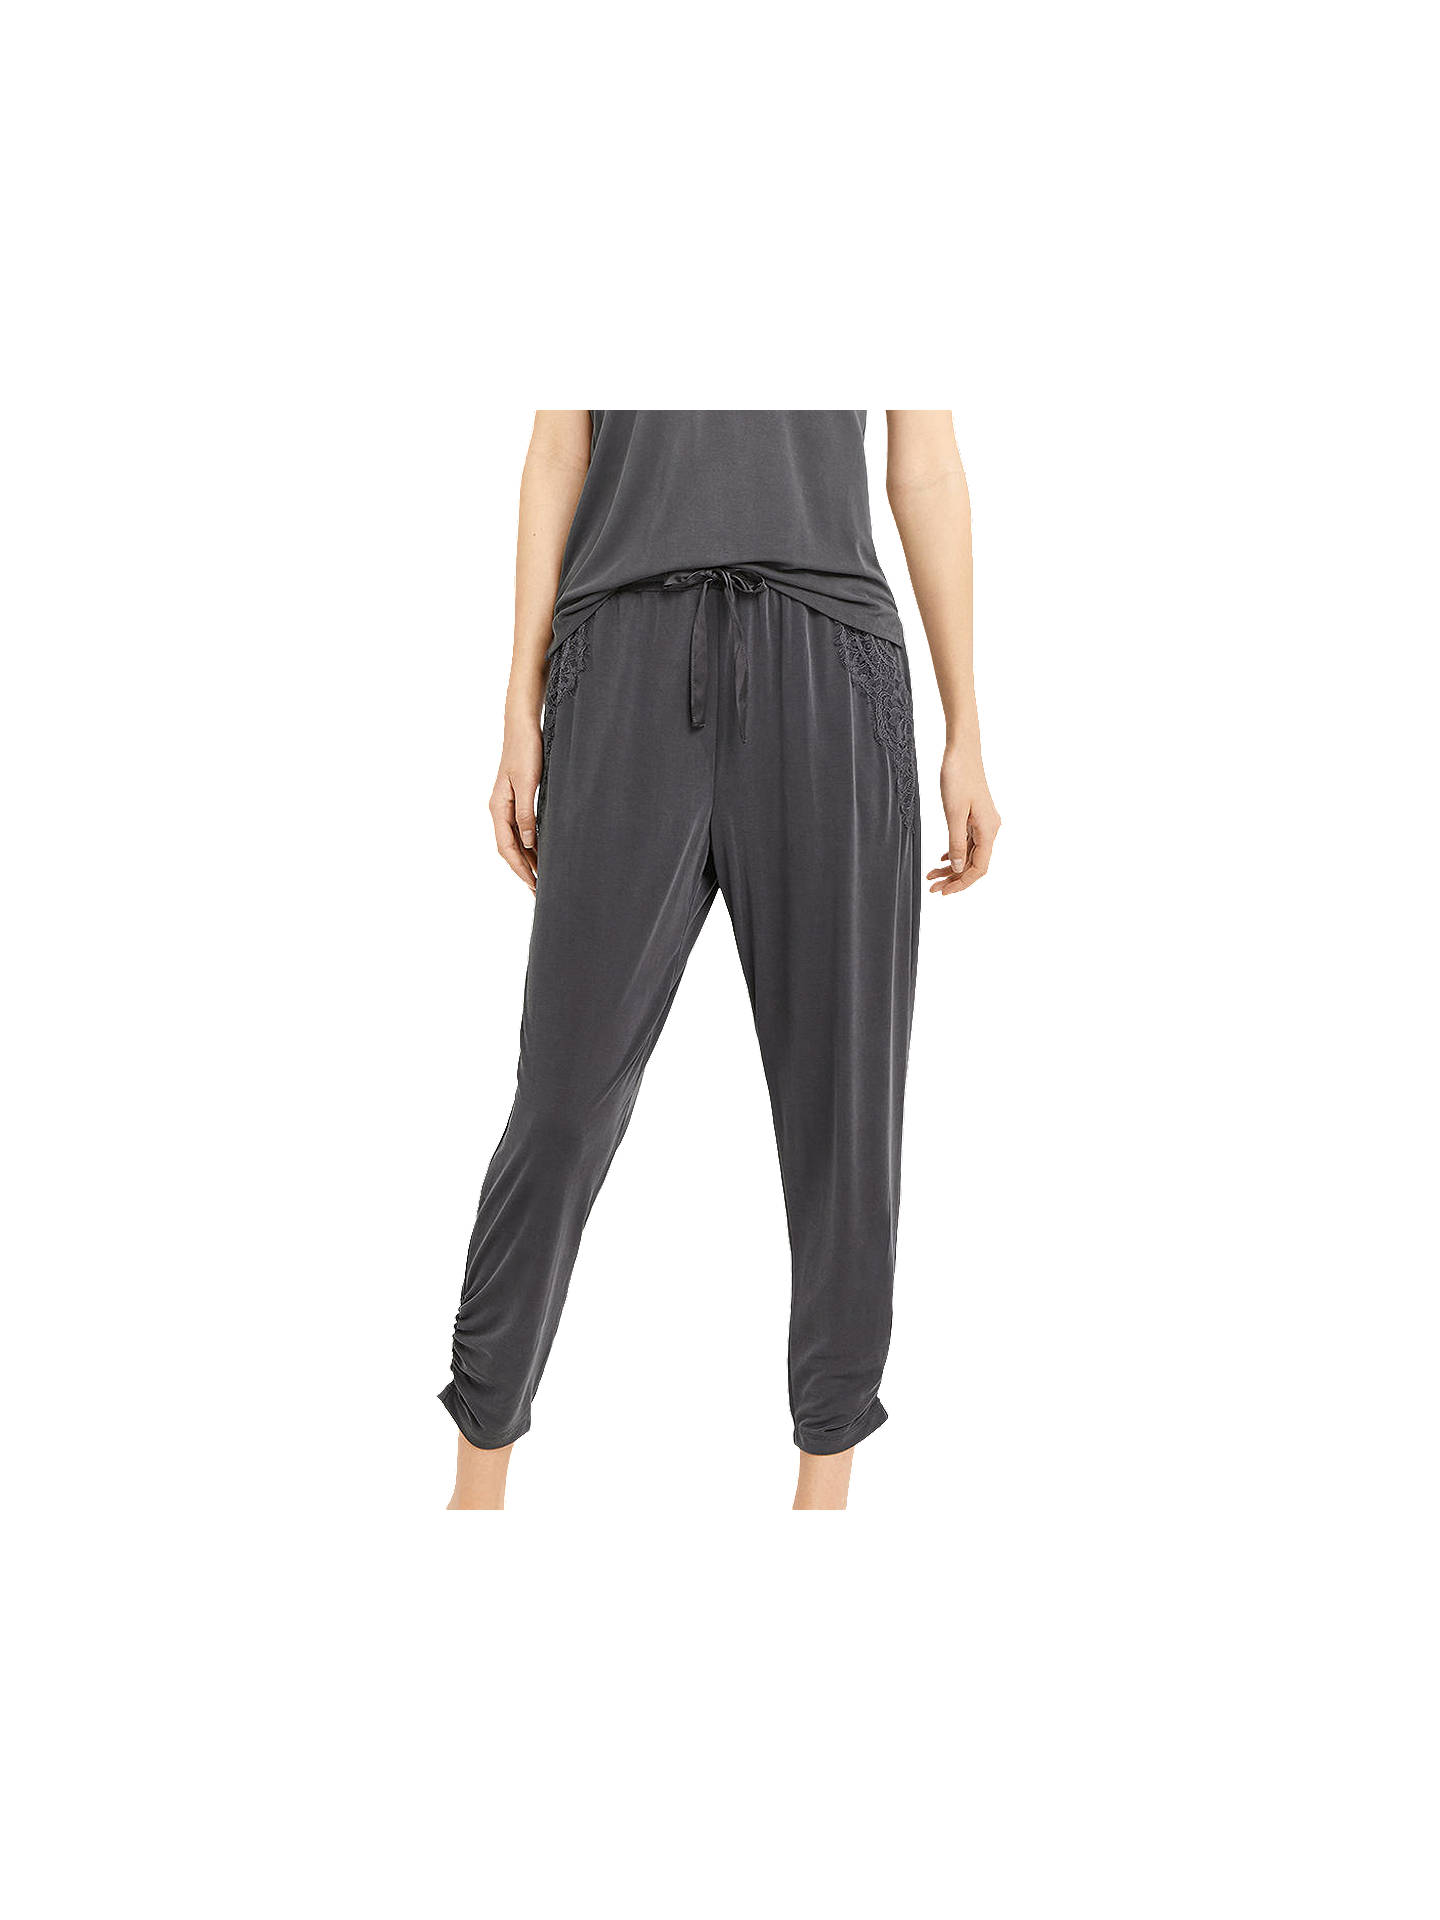 BuyOasis Soft Lace Trim Joggers, Dark Grey, XS Online at johnlewis.com